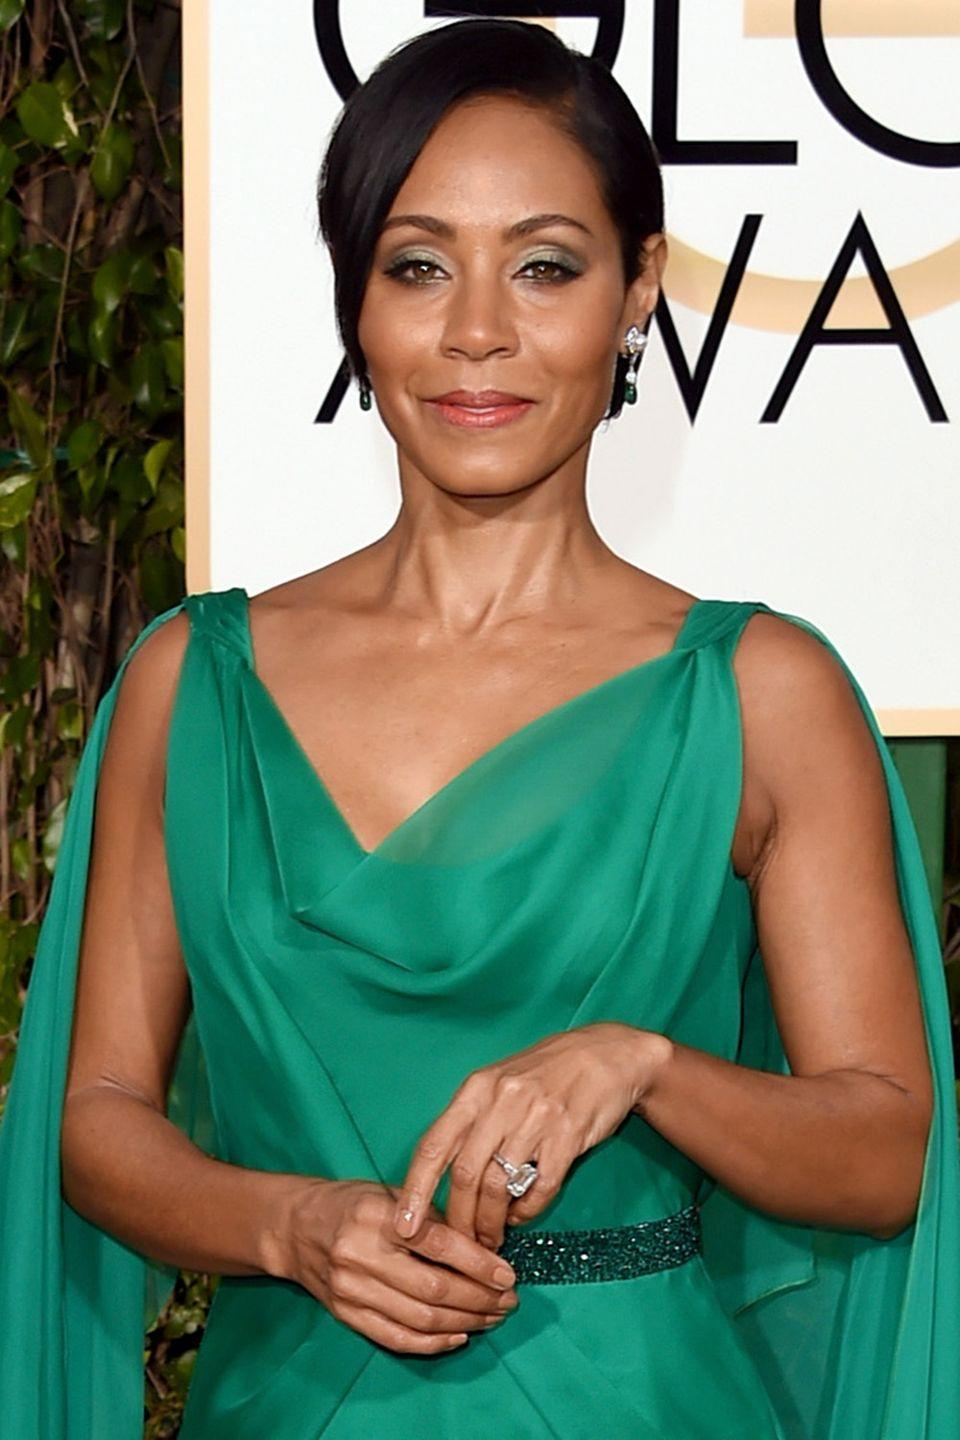 """<p>In a 2010 <a href=""""http://www.usmagazine.com/entertainment/news/25-things-you-dont-know-about-me-jada-pinkett-smith-201048http://www.usmagazine.com/entertainment/news/25-things-you-dont-know-about-me-jada-pinkett-smith-201048"""" rel=""""nofollow noopener"""" target=""""_blank"""" data-ylk=""""slk:Us Weekly"""" class=""""link rapid-noclick-resp"""">Us Weekly</a> profile, the actor revealed 25 things the world wouldn't know about her, number five being that she hasn't consumed alcohol since the early '90s. </p>"""